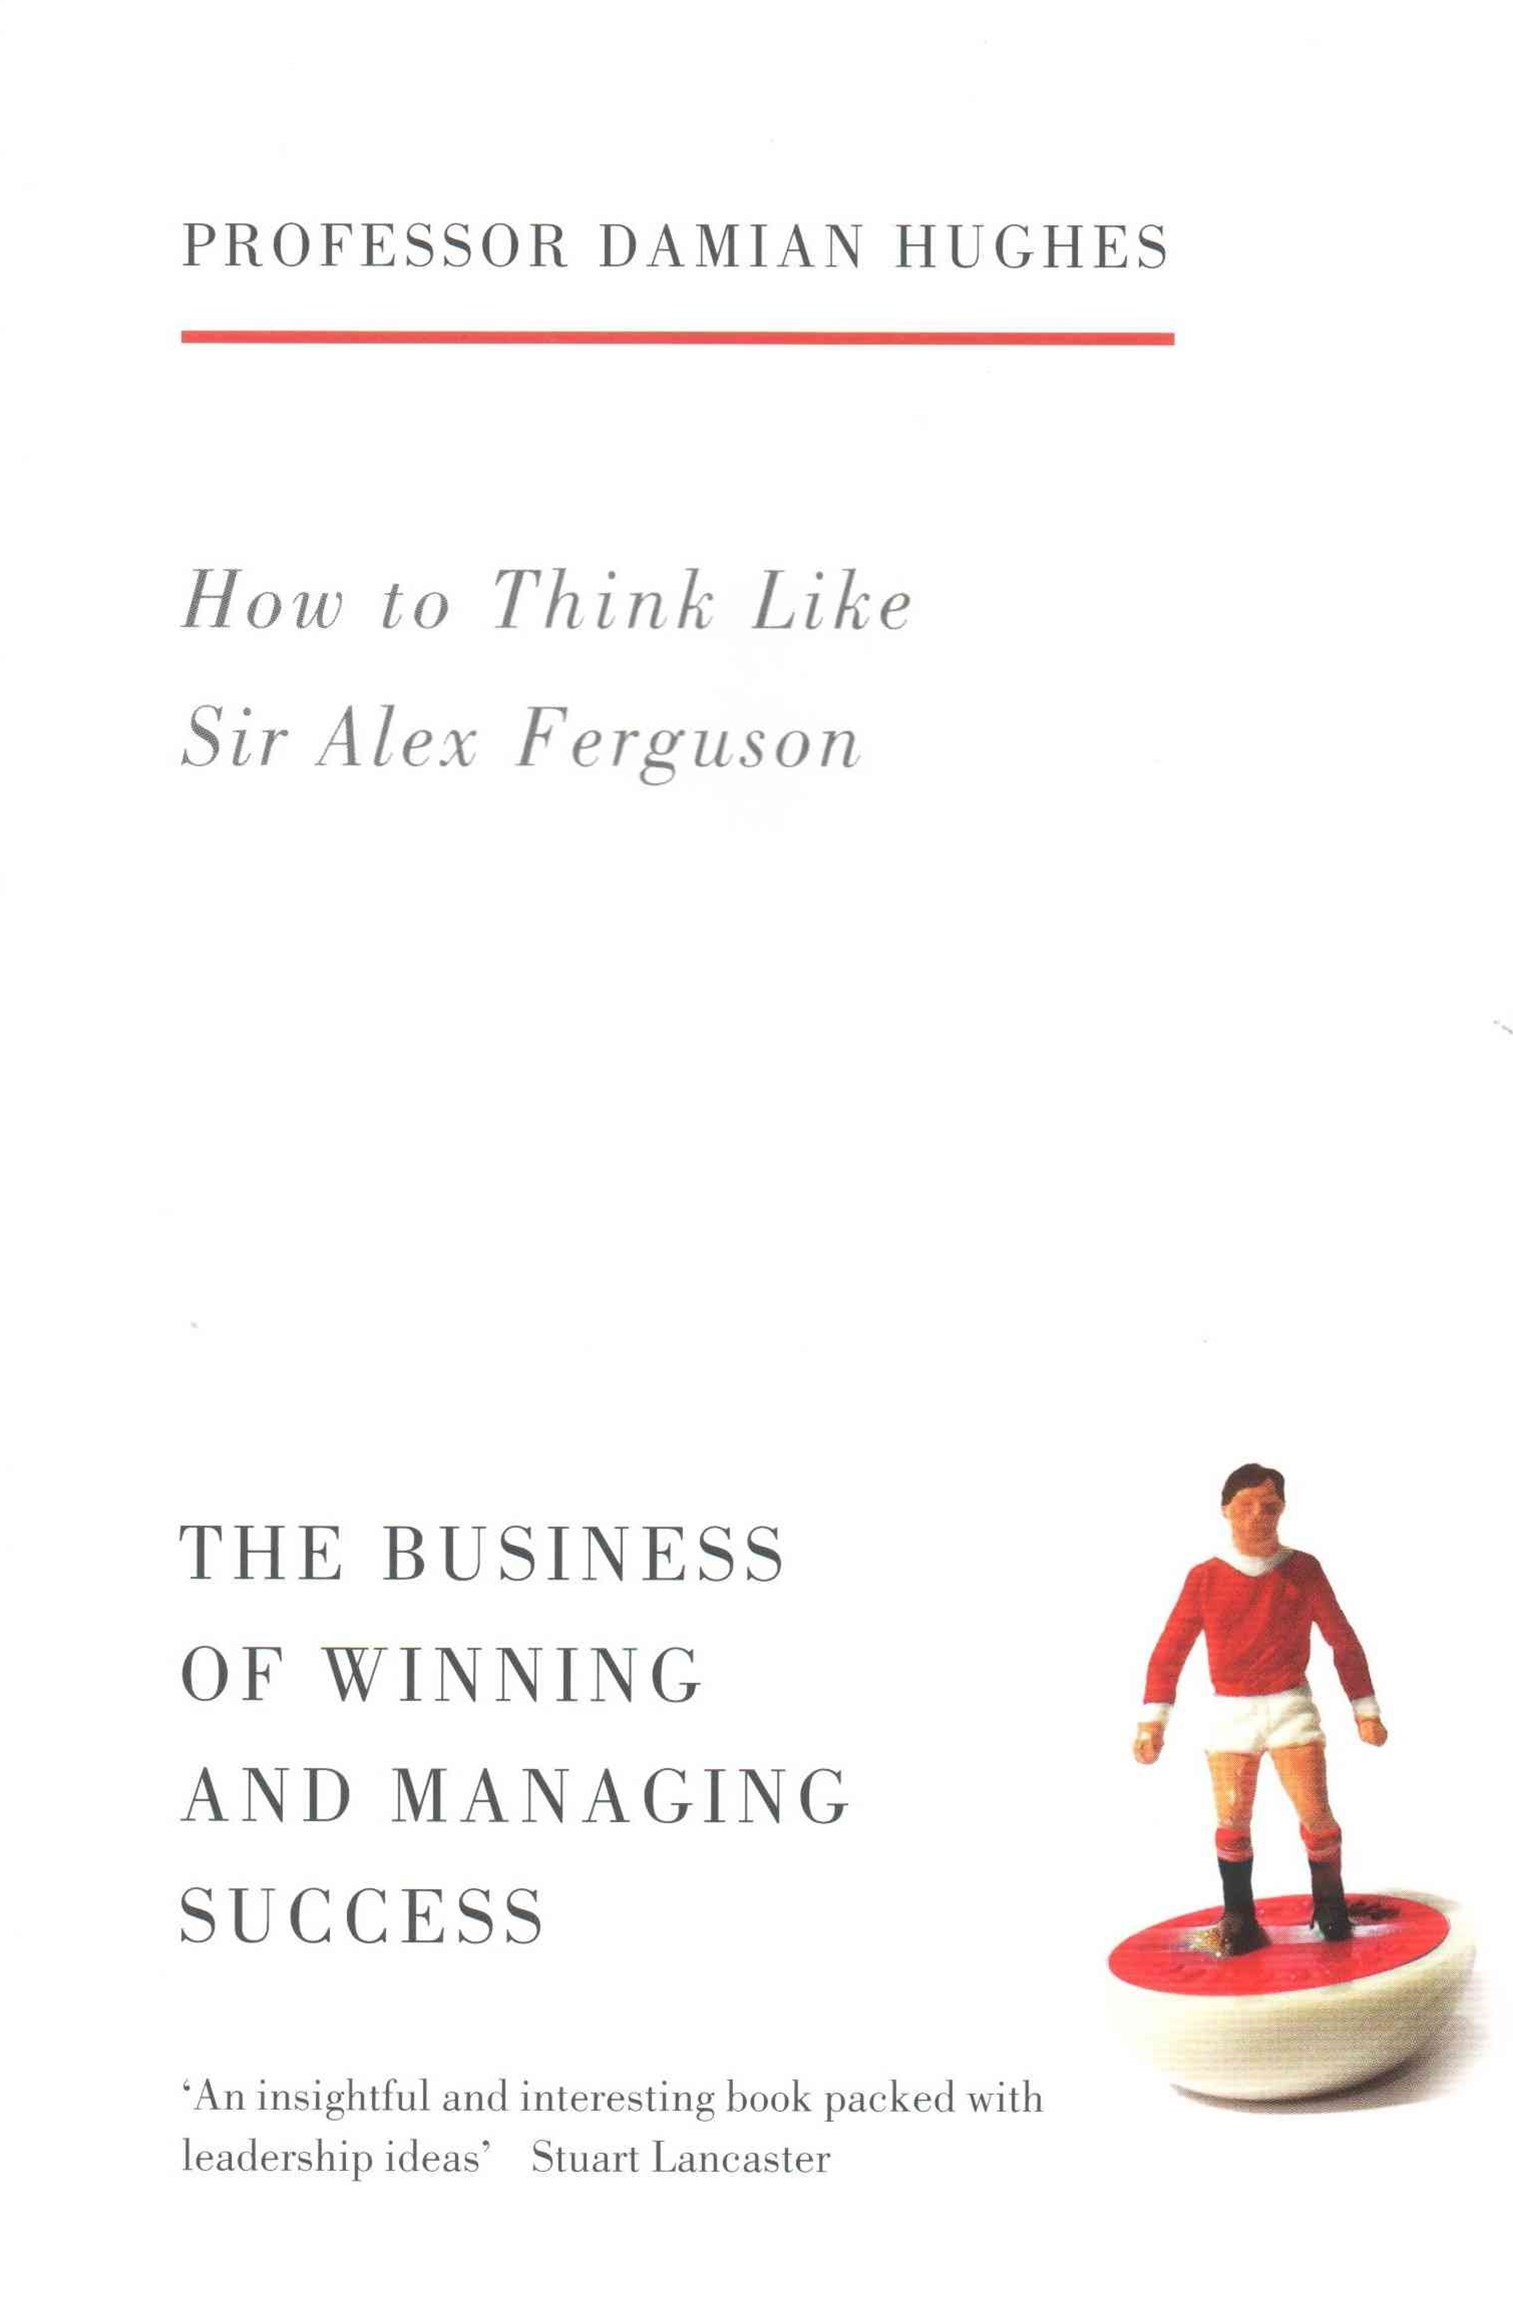 How to Think Like Sir Alex Ferguson